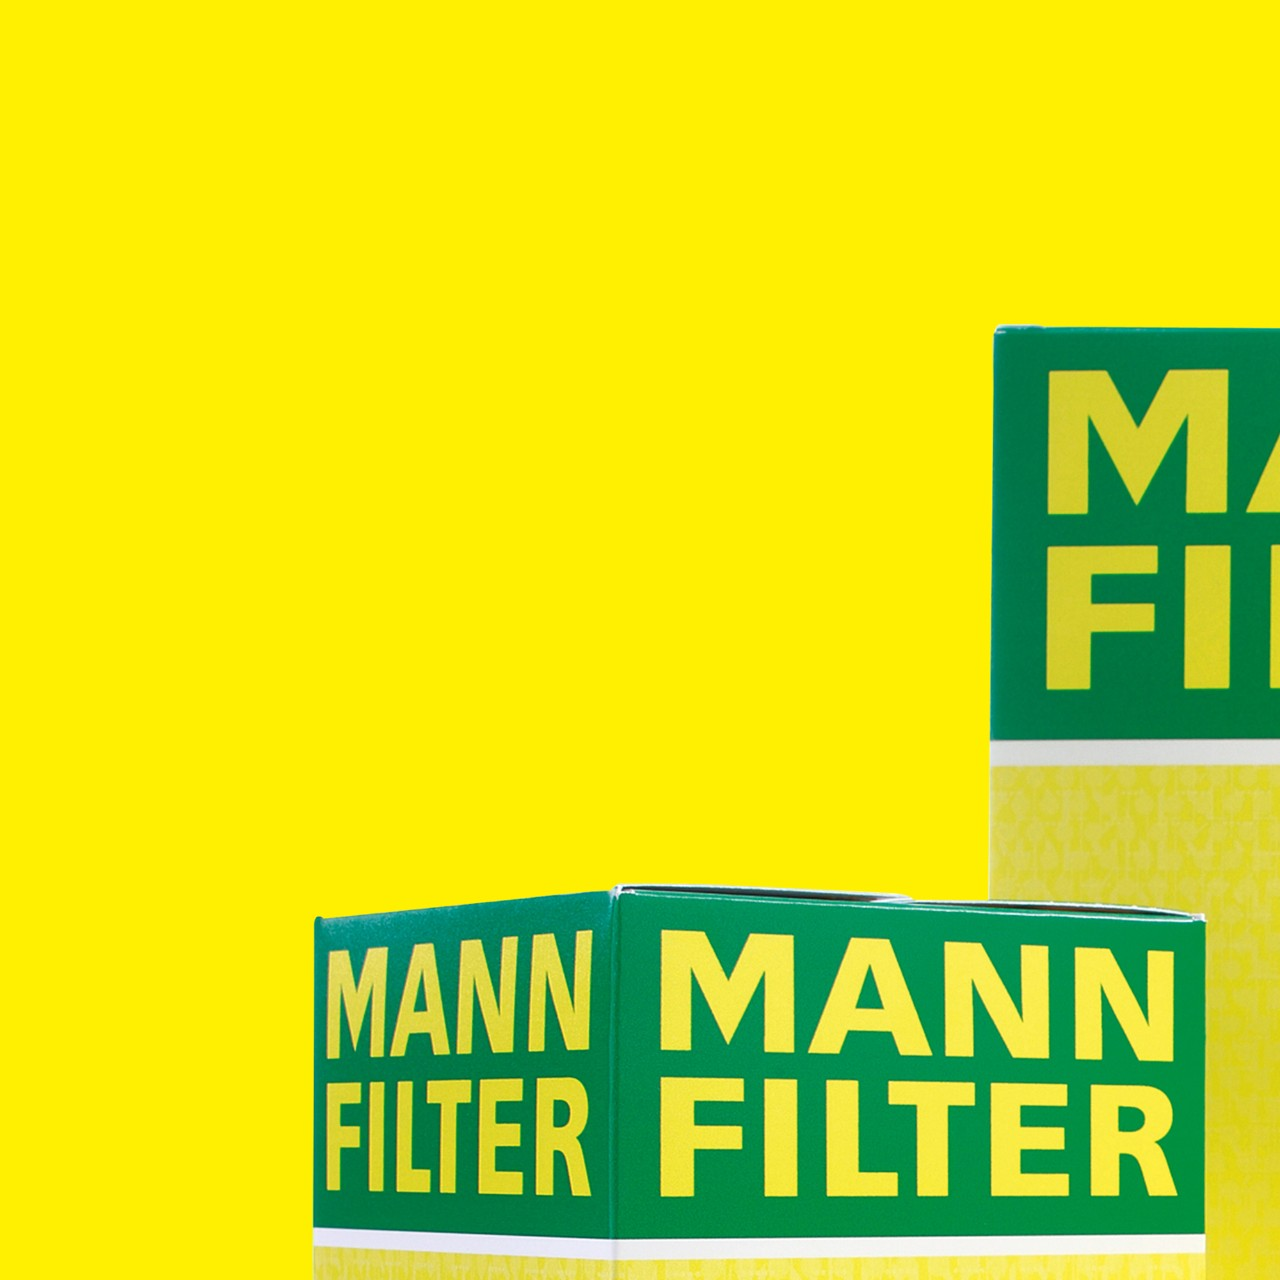 MANN-FILTER award part 1